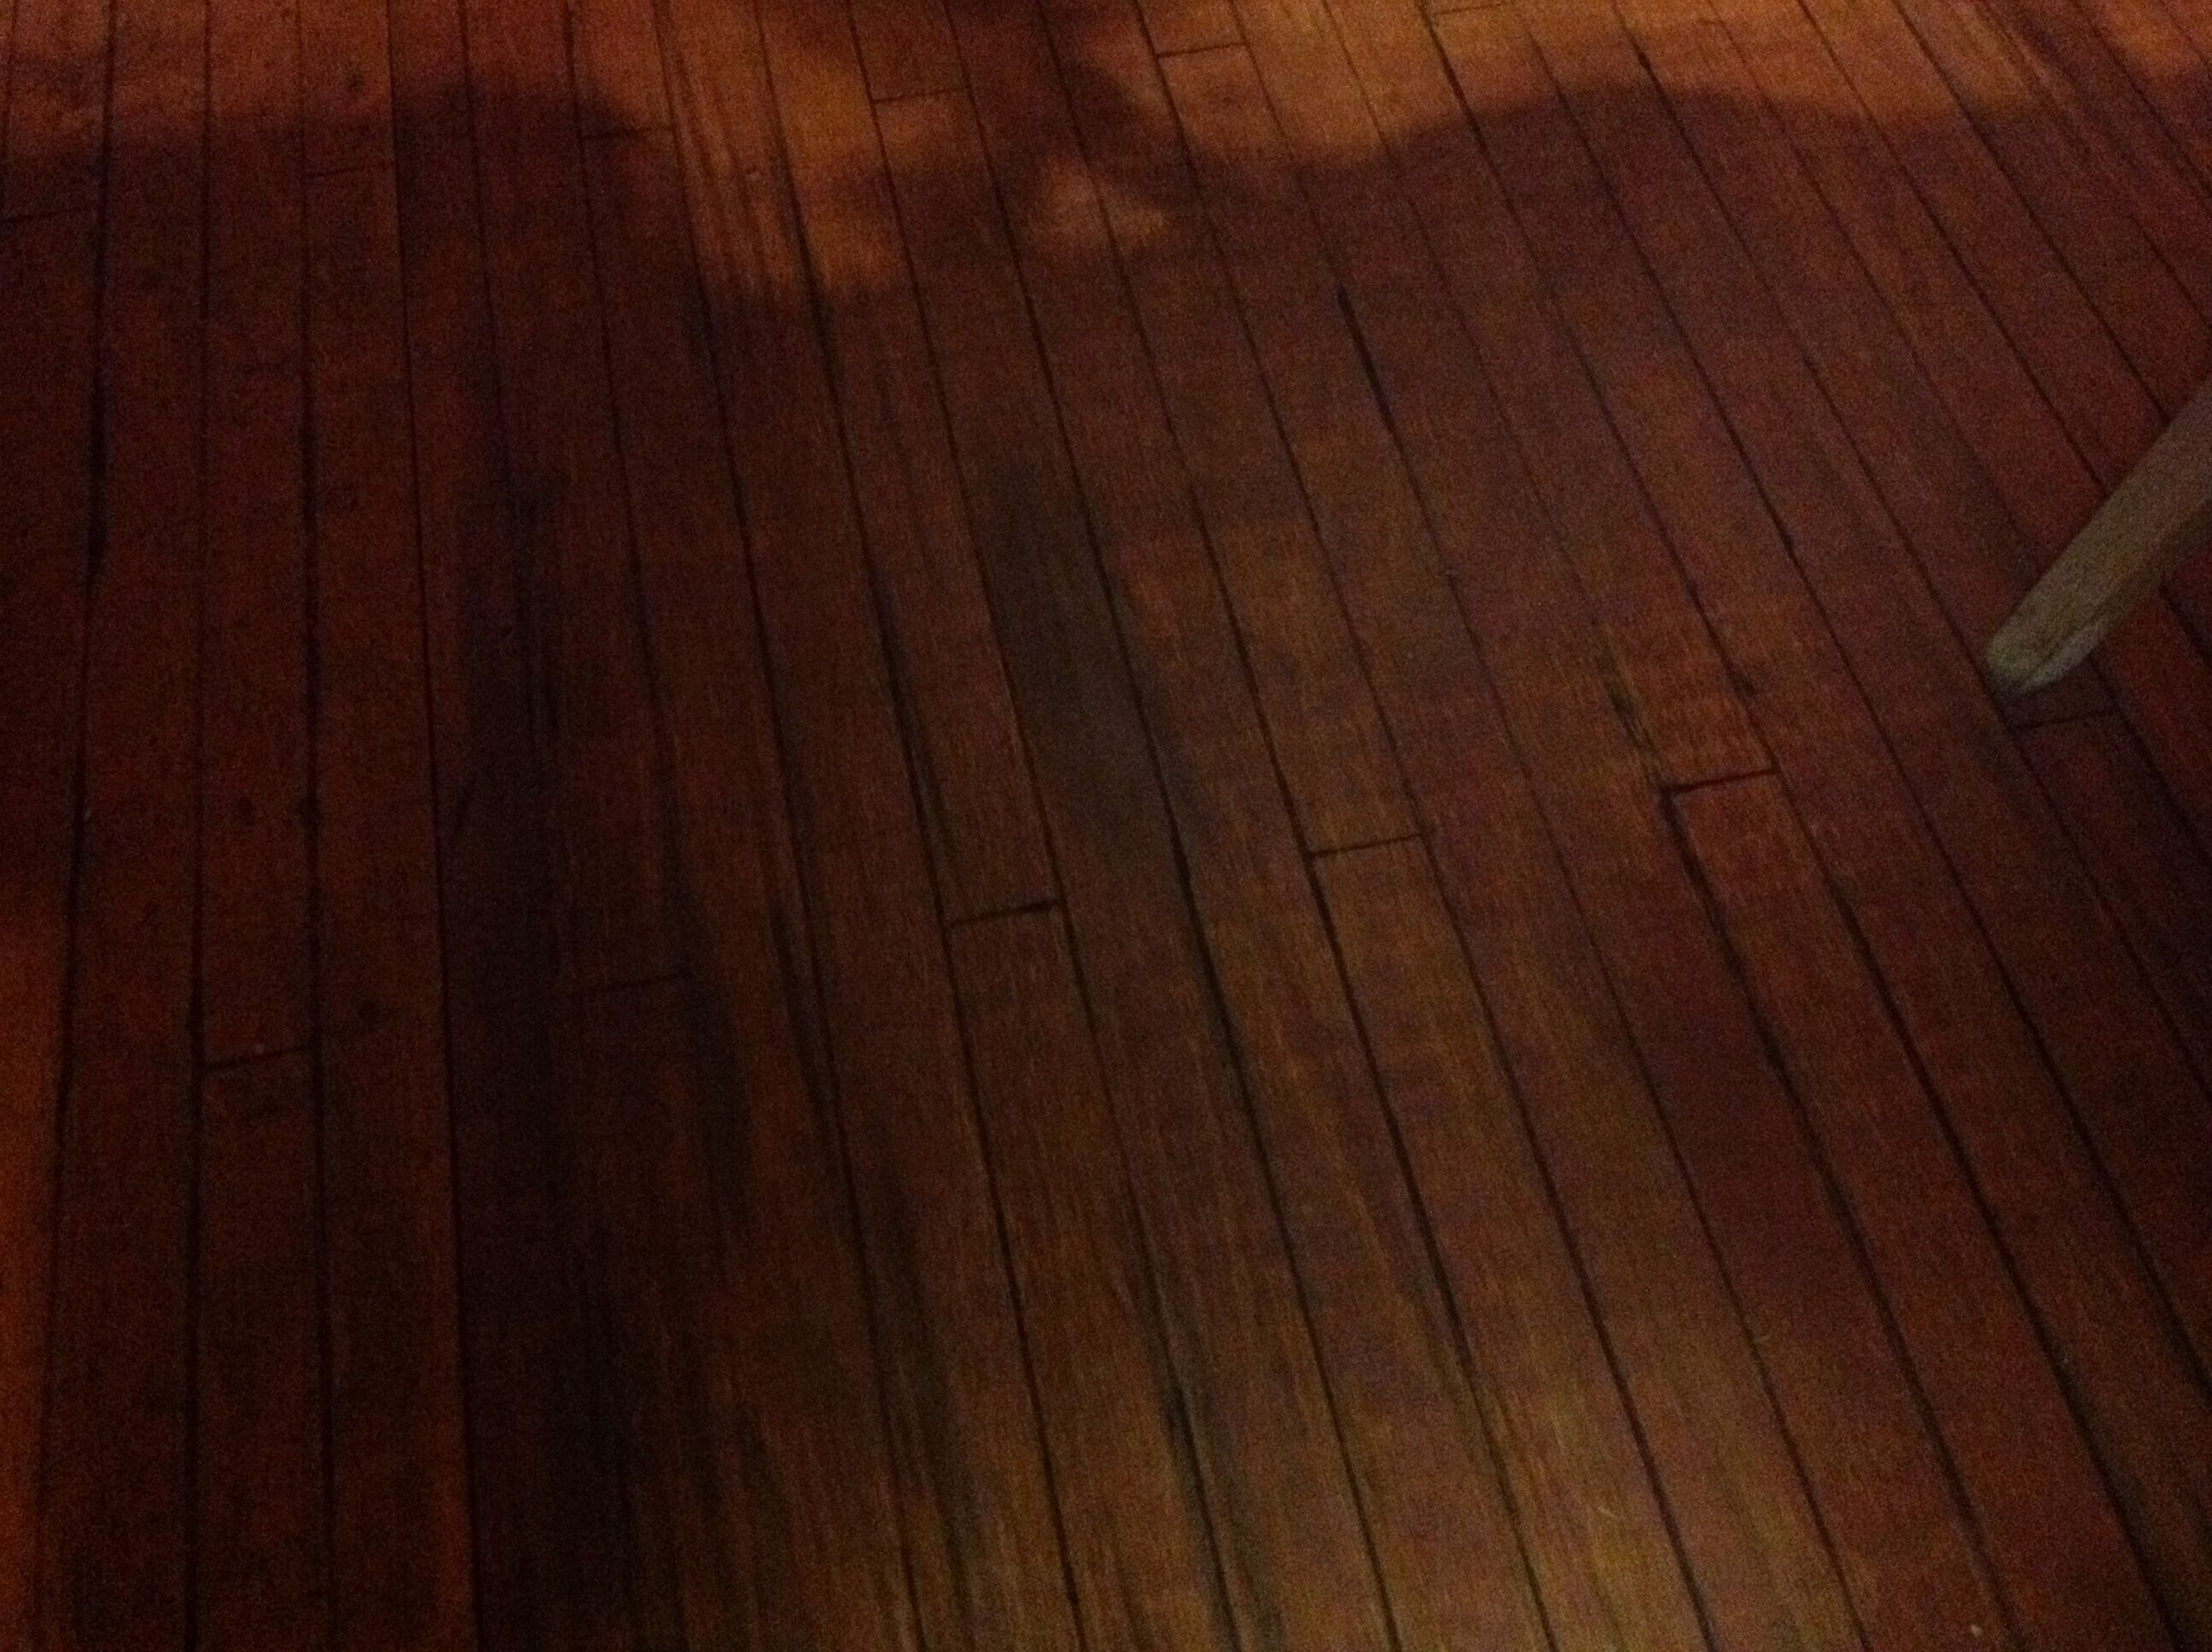 Plywood floor We stained a subfloor with cherry stain and used an